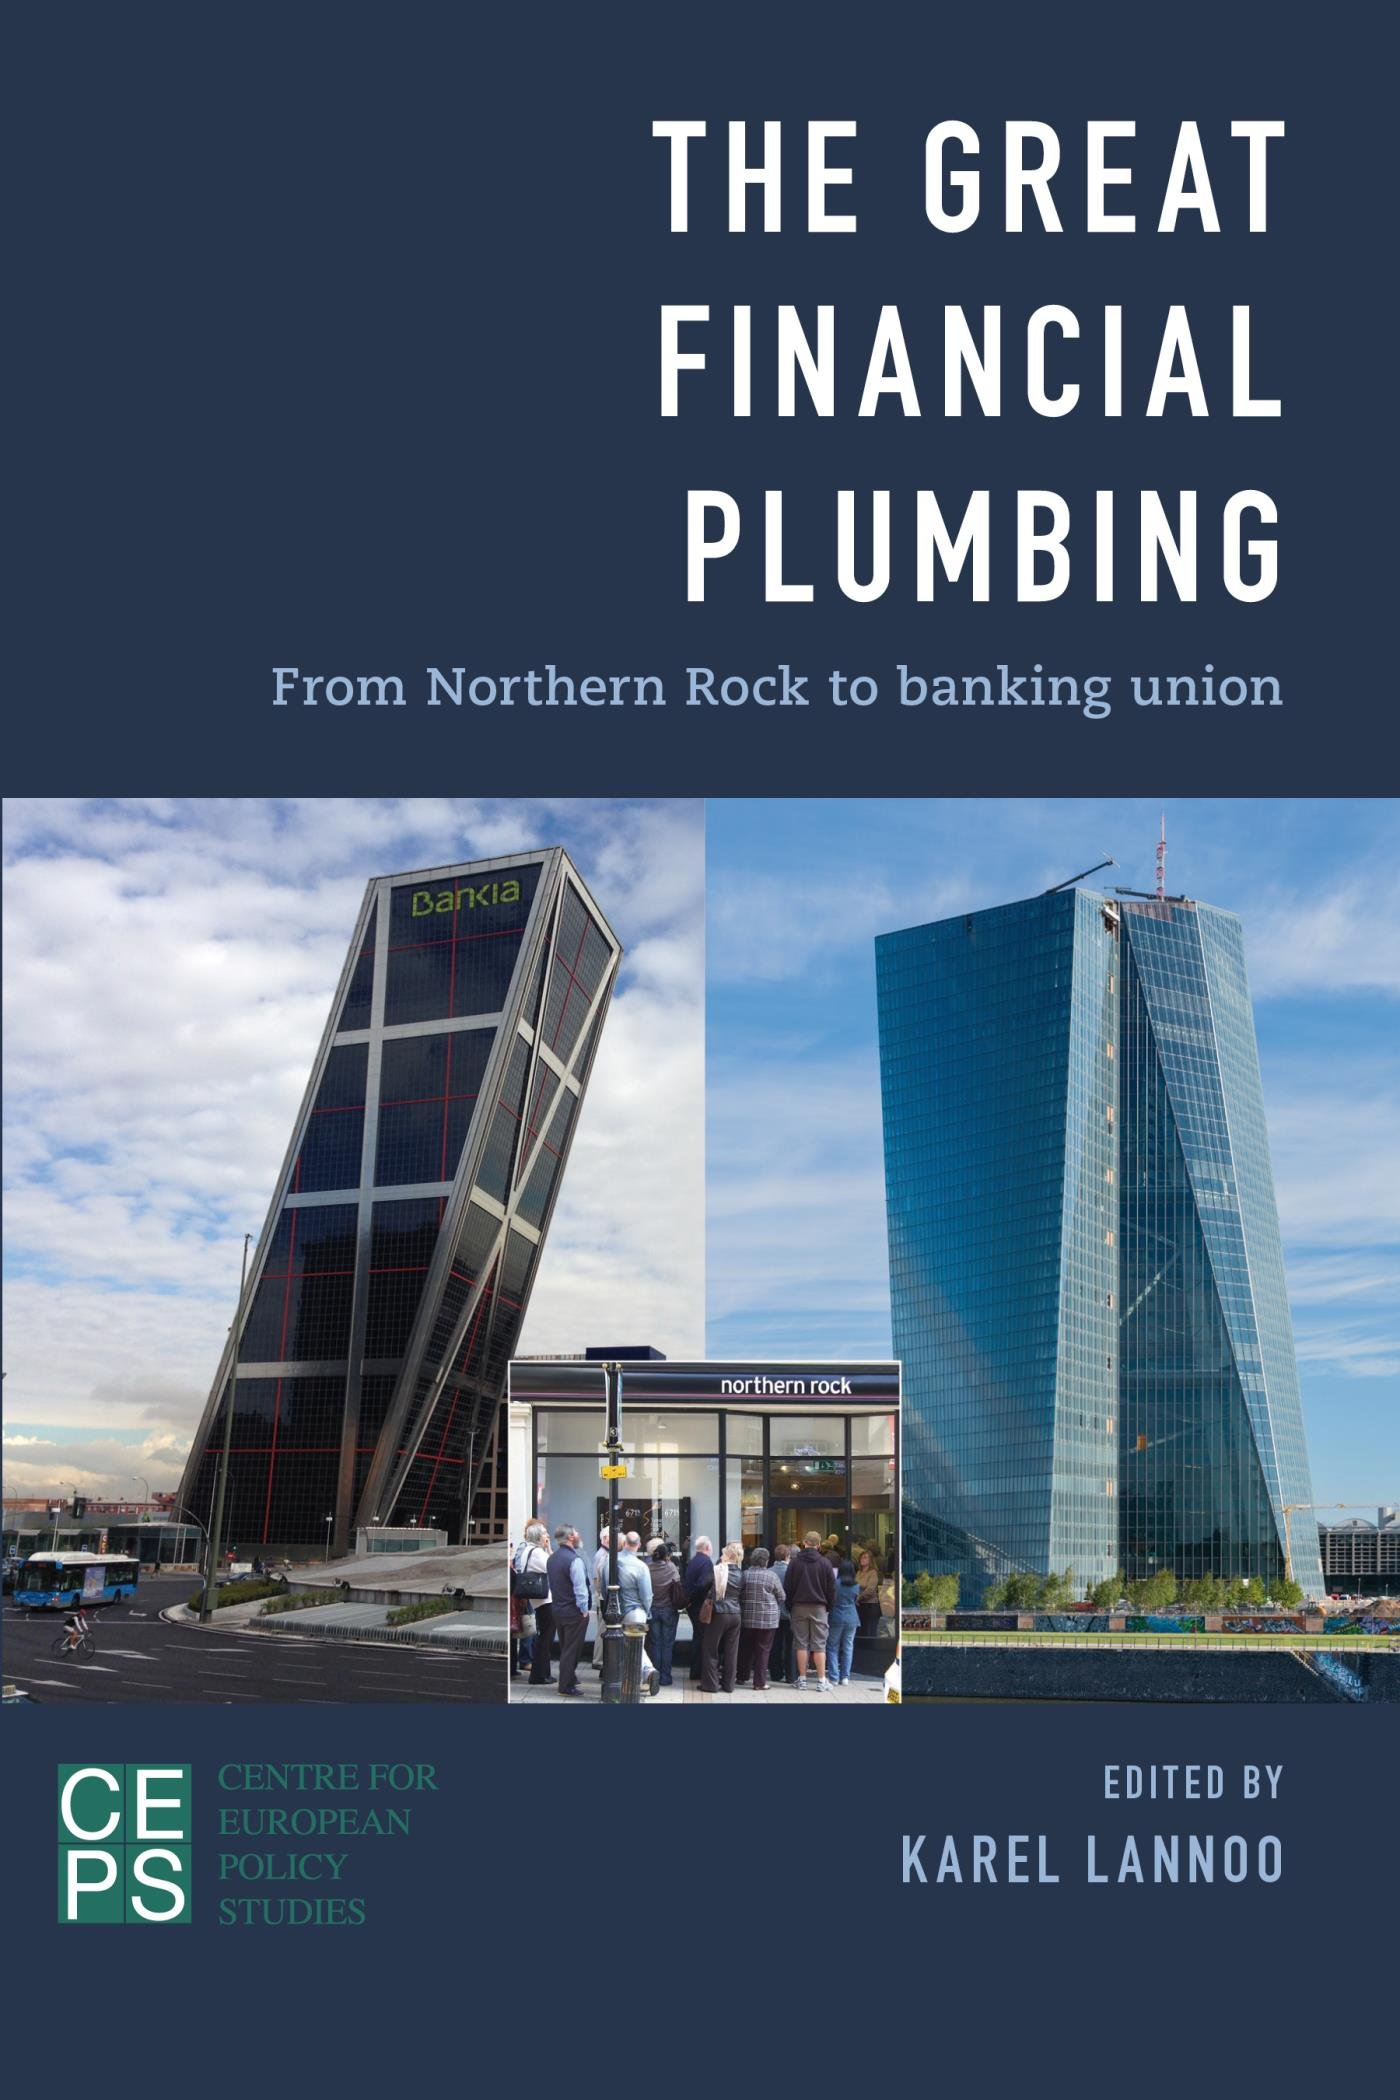 The Great Financial Plumbing: From Northern Rock to Banking Union